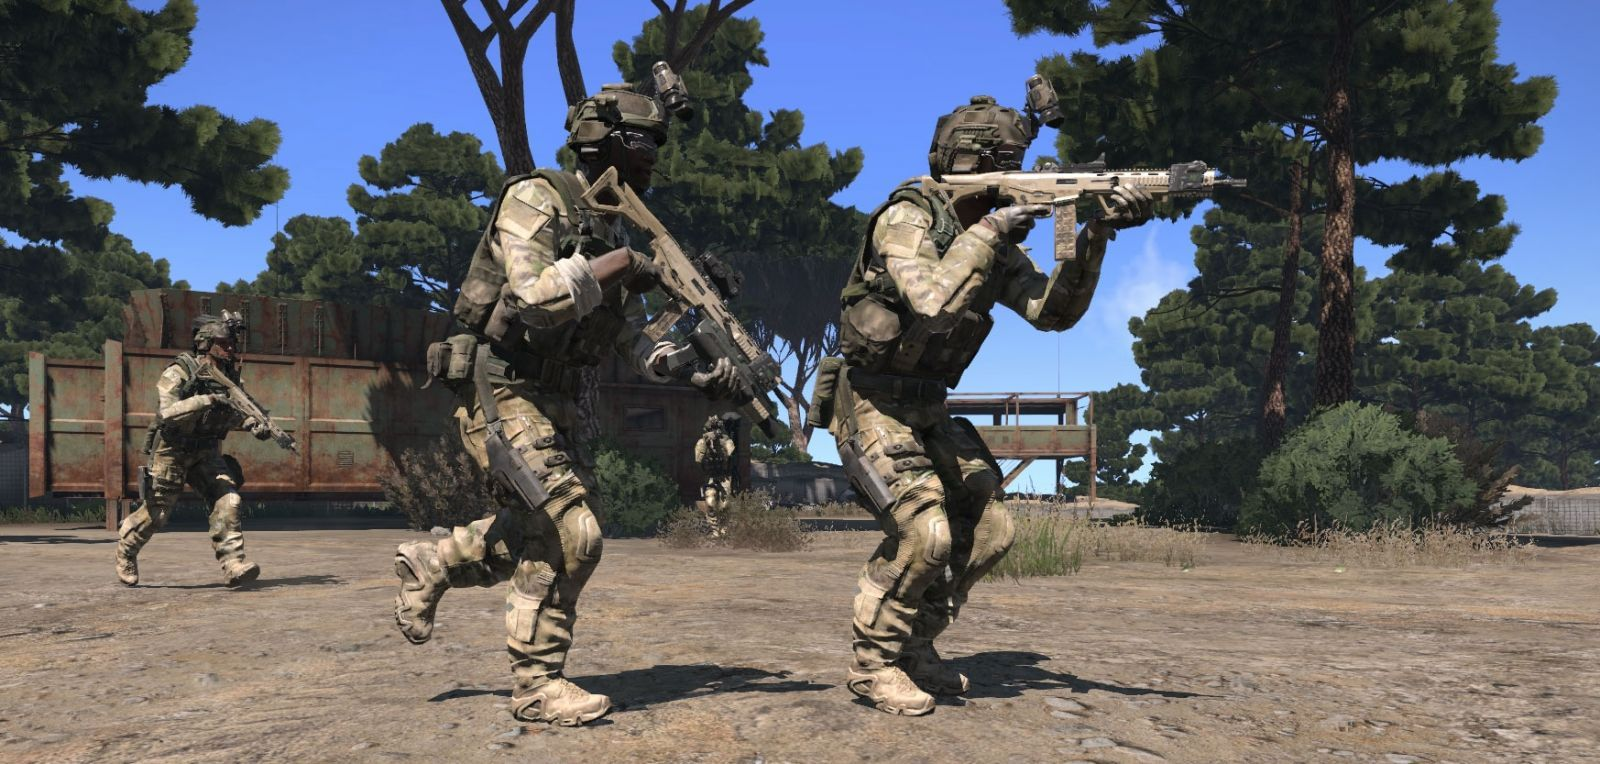 arma 3 soldiers 4